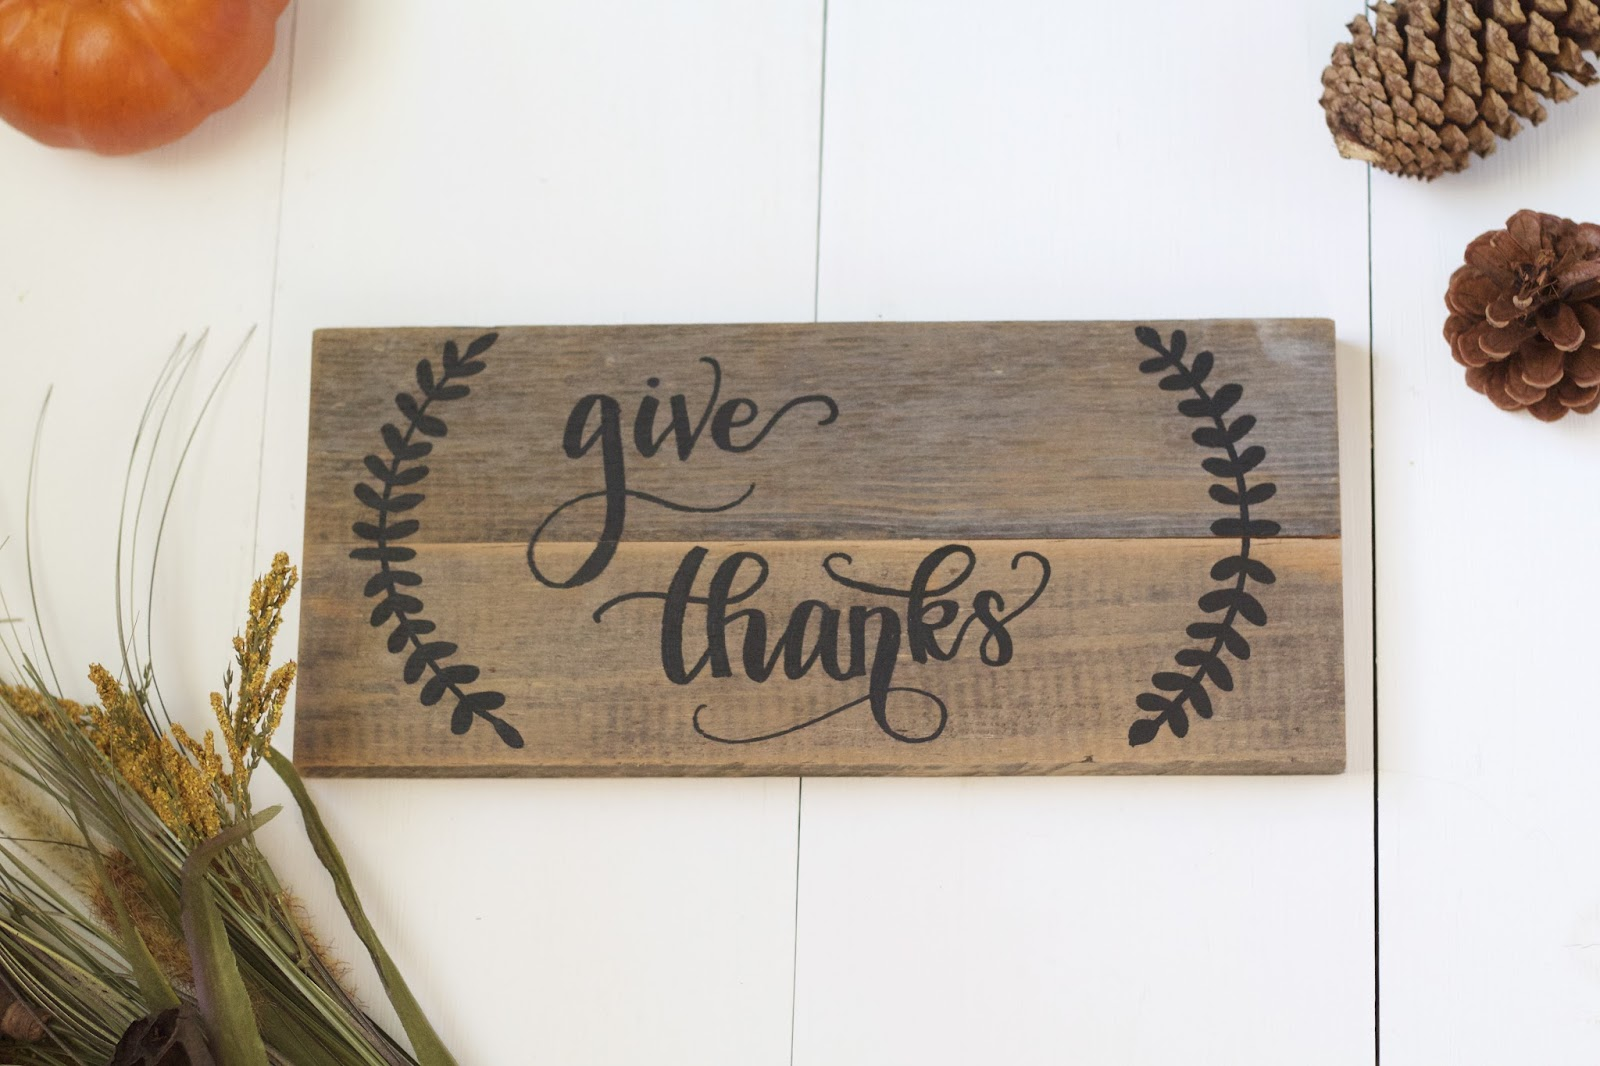 See more Etsy listings from Wild Cedar Co // https://www.etsy.com/listing/465134290/give-thanks-wood-sign-autumn-wood-sign?ref=shop_home_feat_1